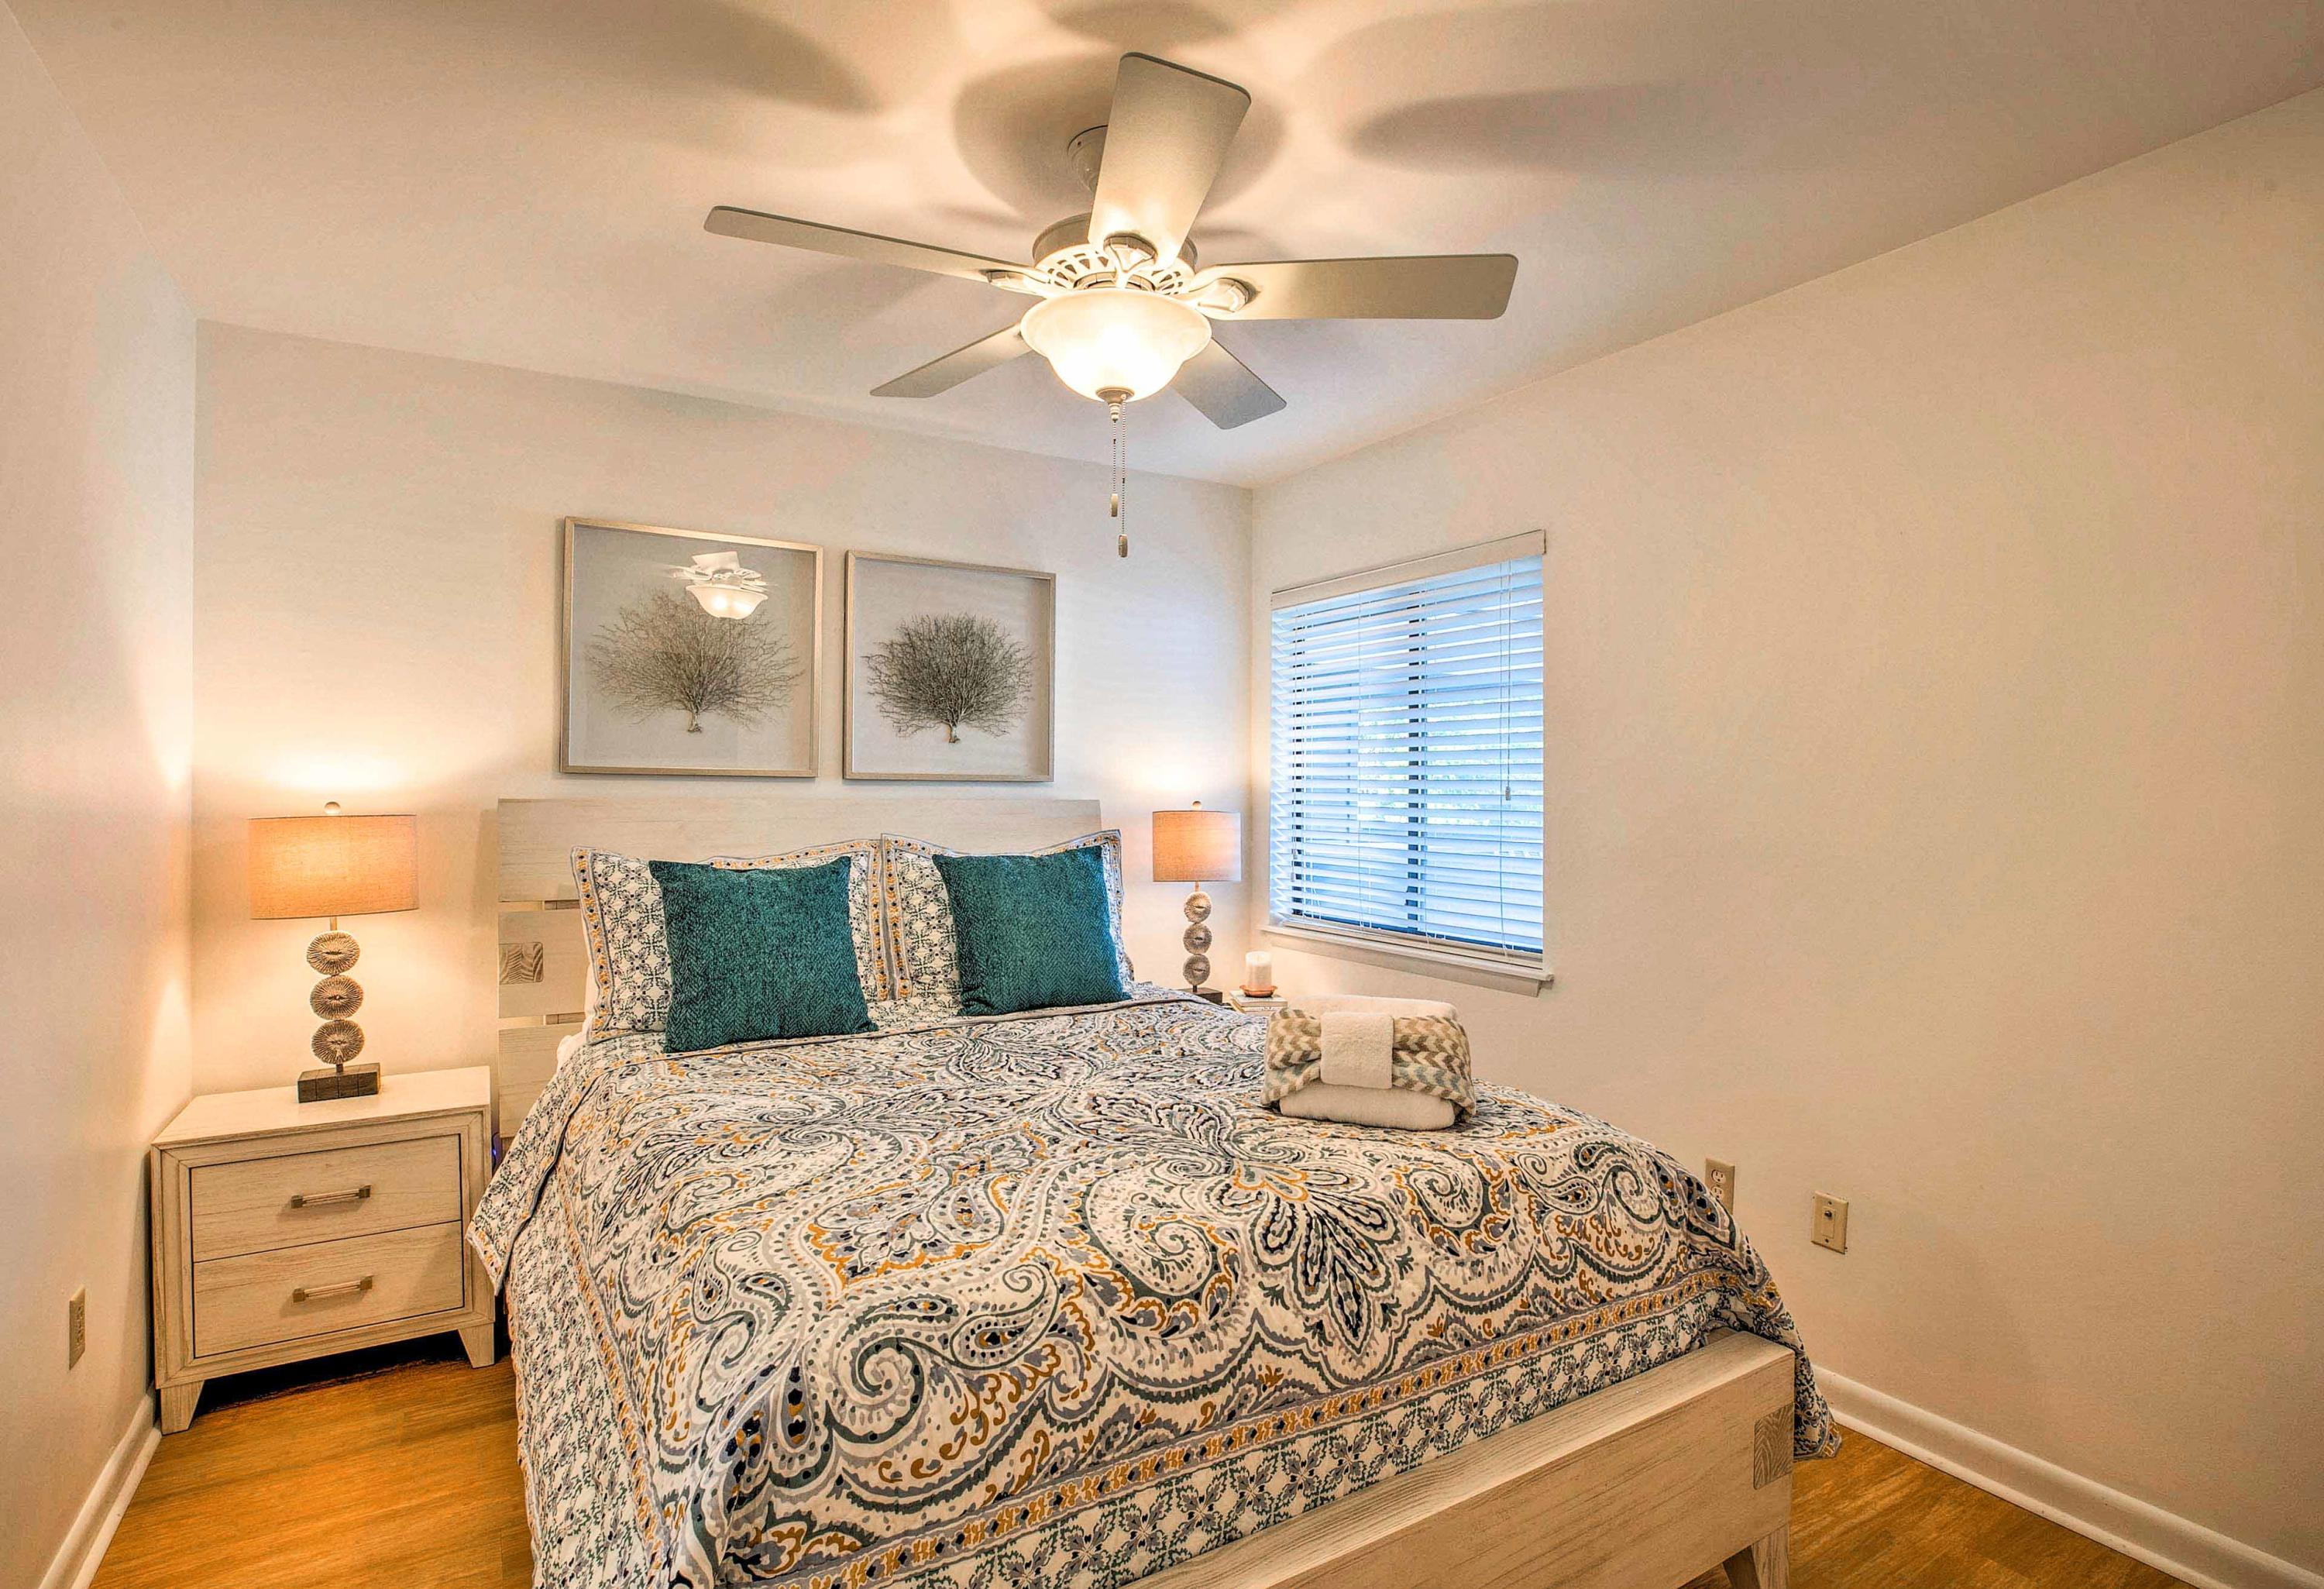 Mariners Cay Homes For Sale - 93 Mariners Cay, Folly Beach, SC - 16